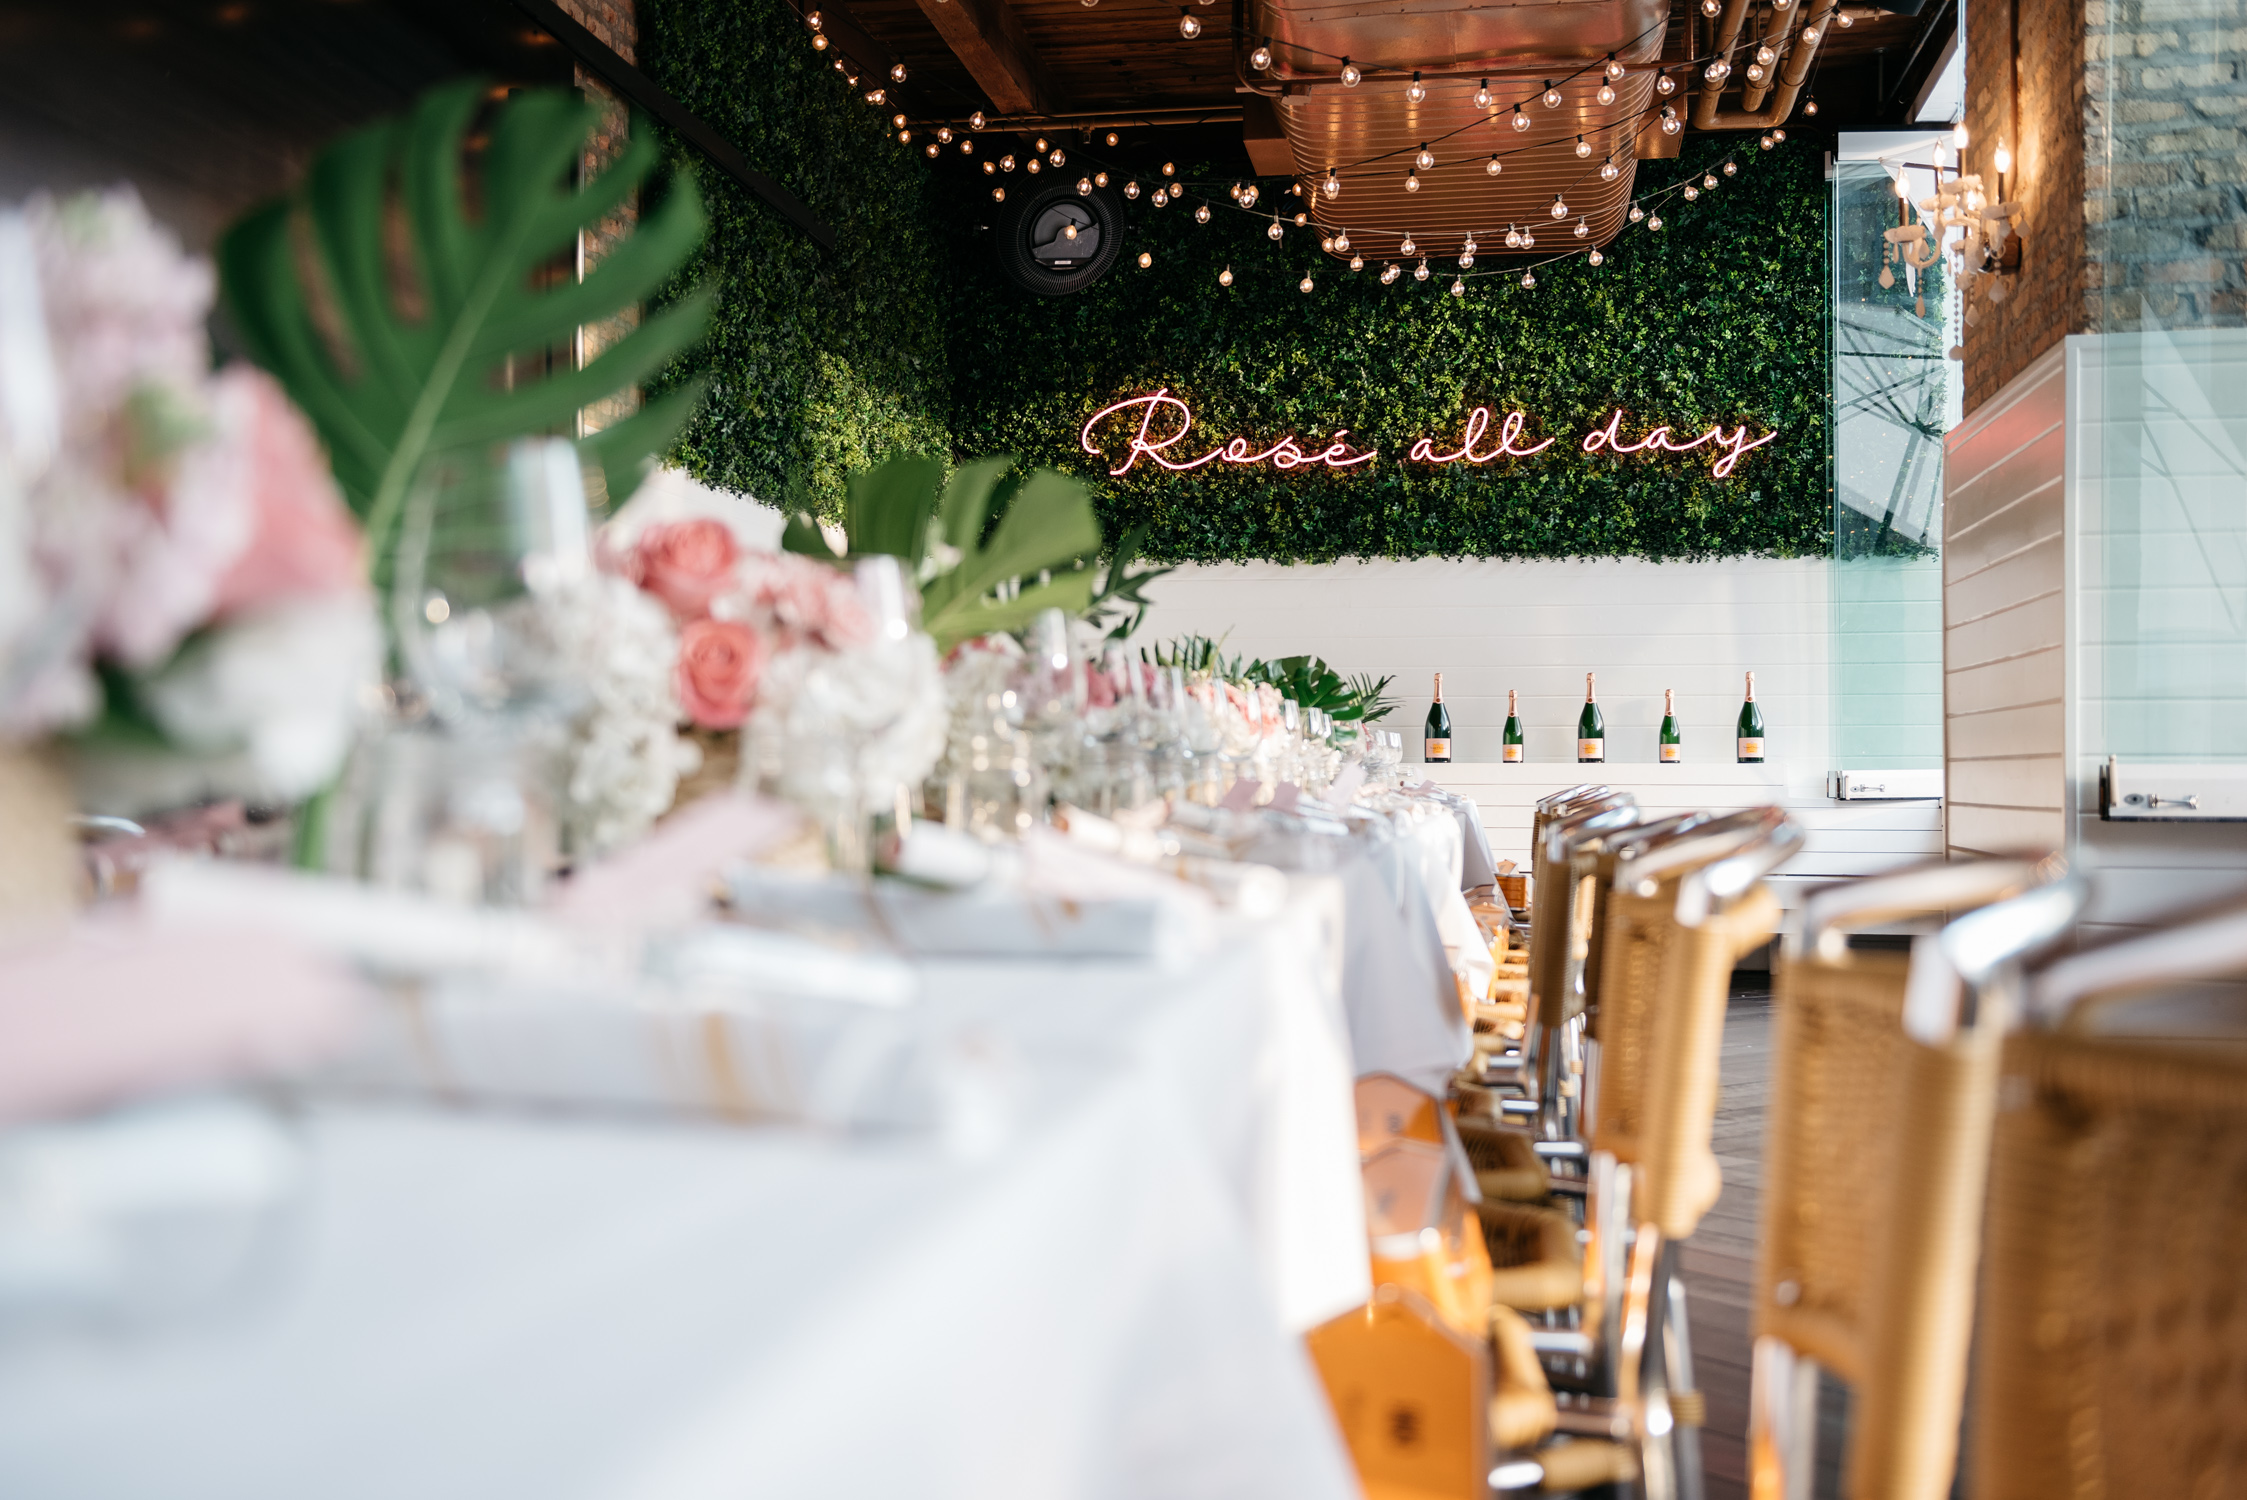 event photographer, chicago, chicago event photographer, event photography, veuve clicquot, hampton social, chicago, illinois, clicquot journey, chicago influencer, champagne, champagne pairing dinner, champagne pairing,